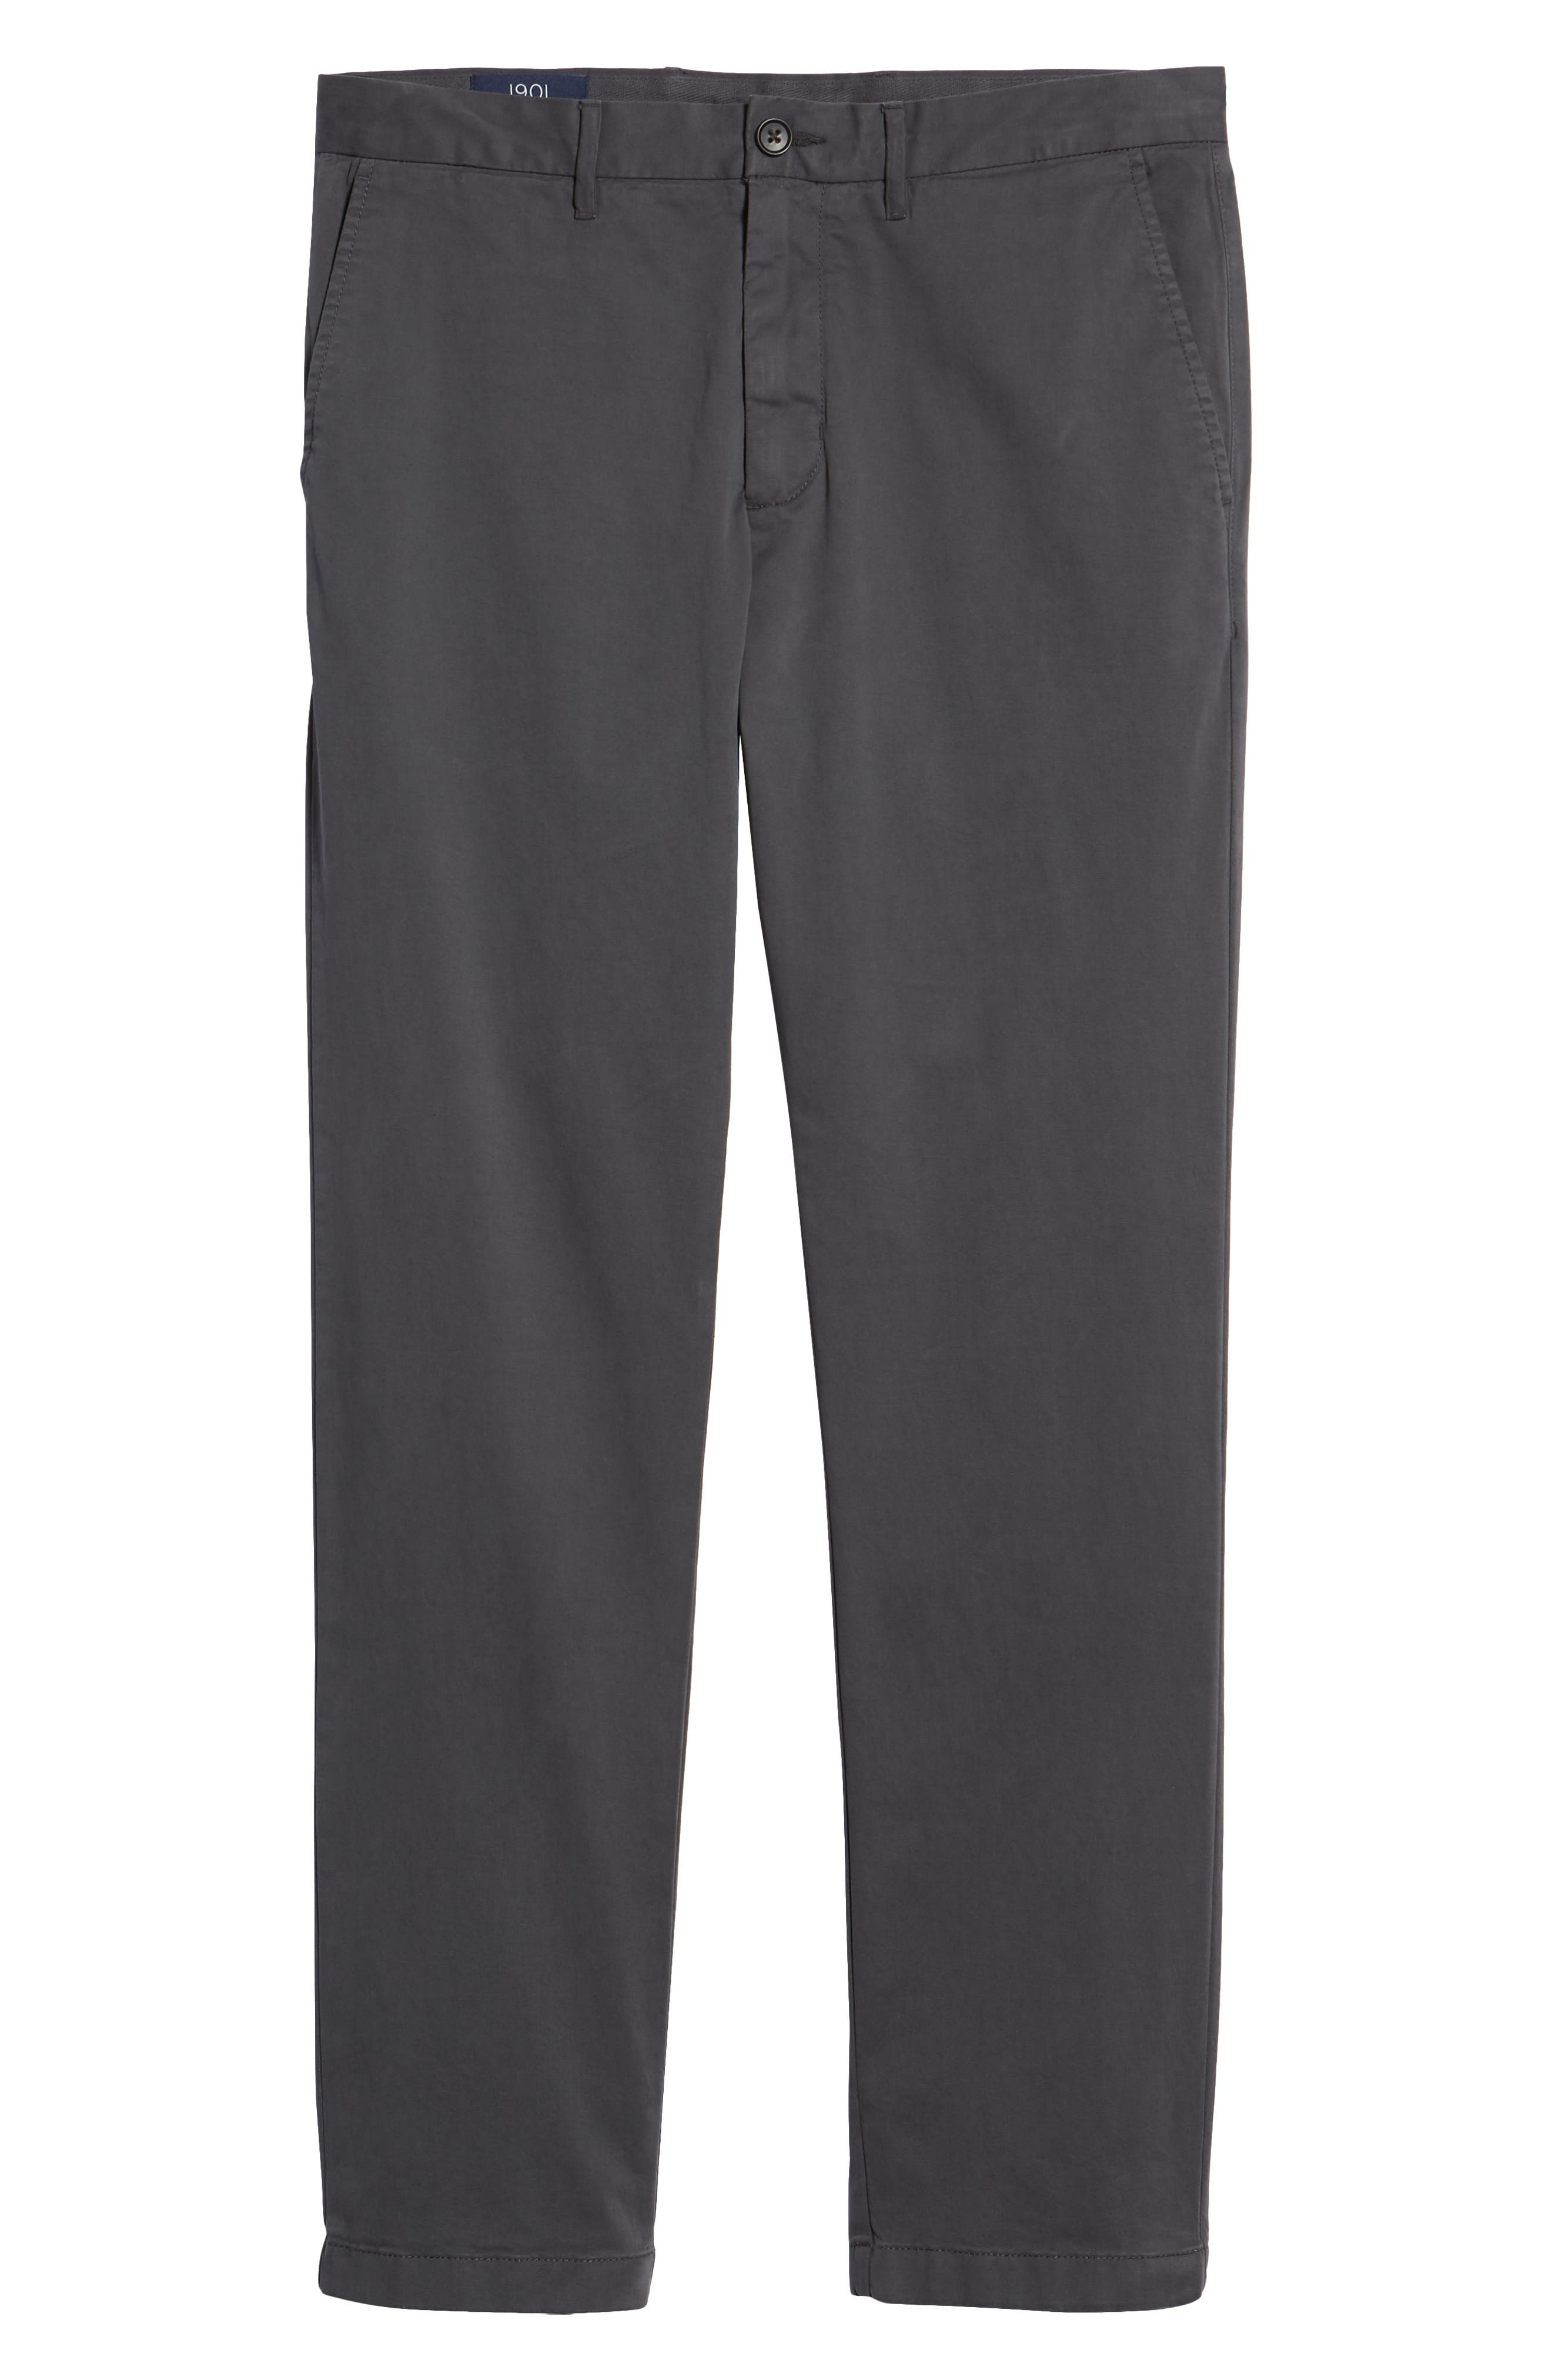 Fremont Flat Front Slim Fit Stretch Chino Pants,                             Alternate thumbnail 6, color,                             GREY ONYX